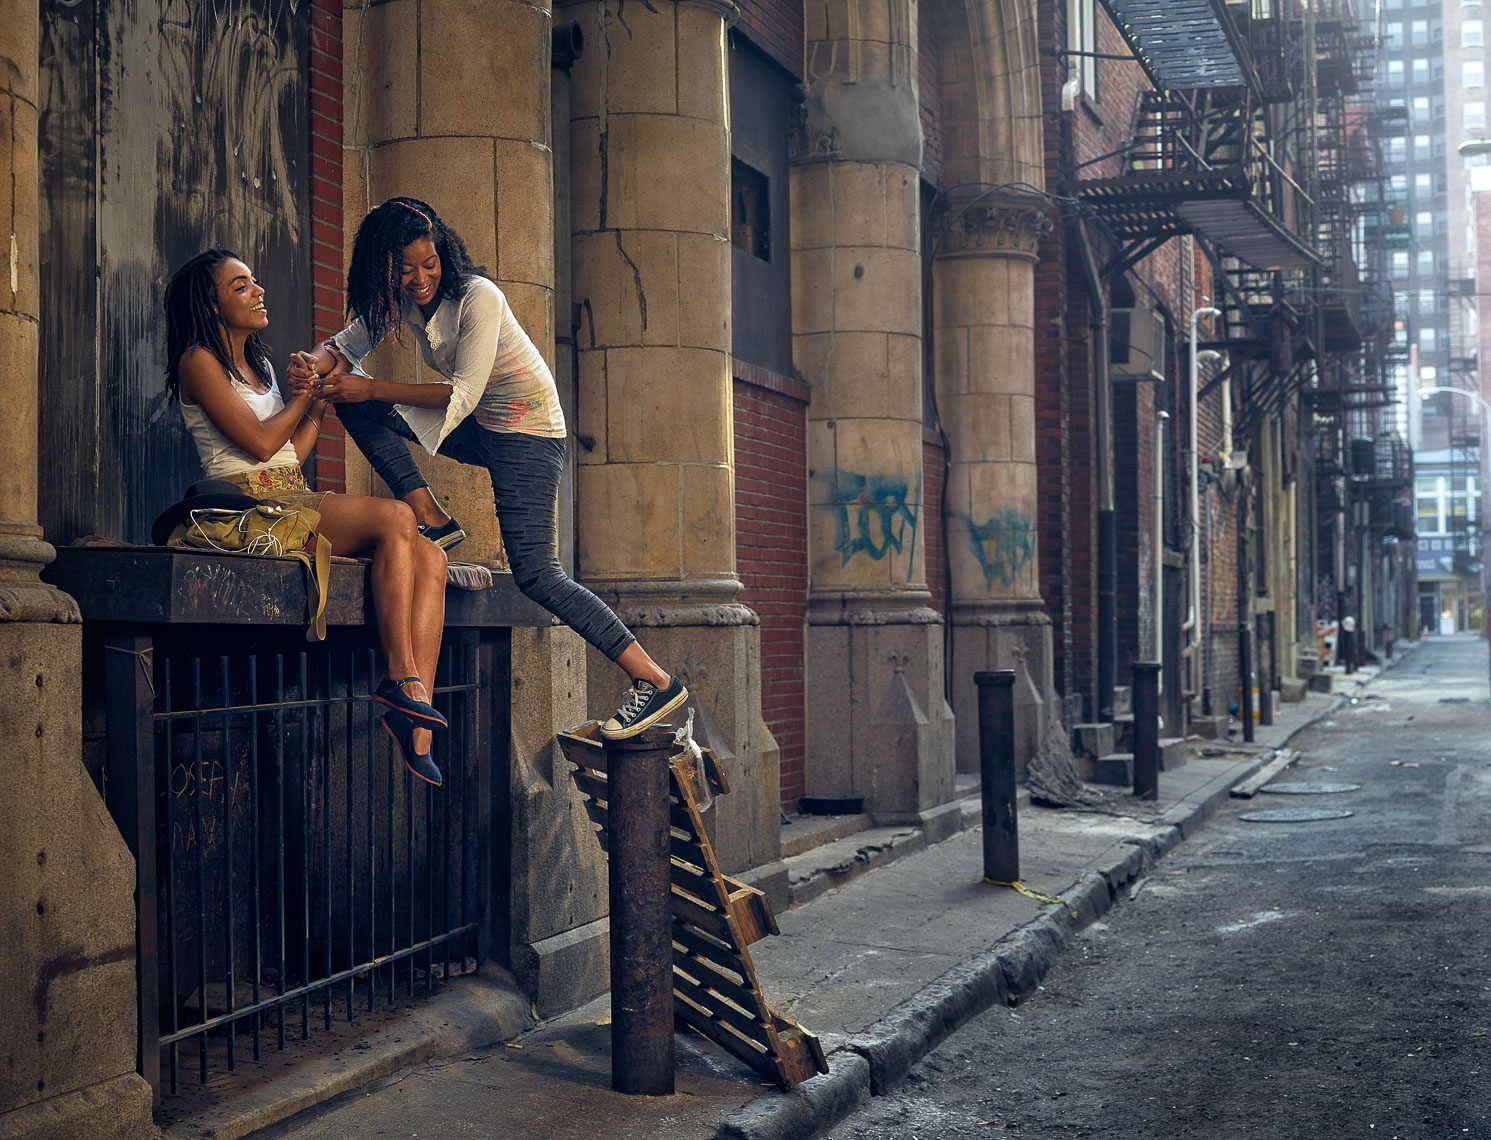 Kevin Steele - urban alley and two girls in Philadelphia